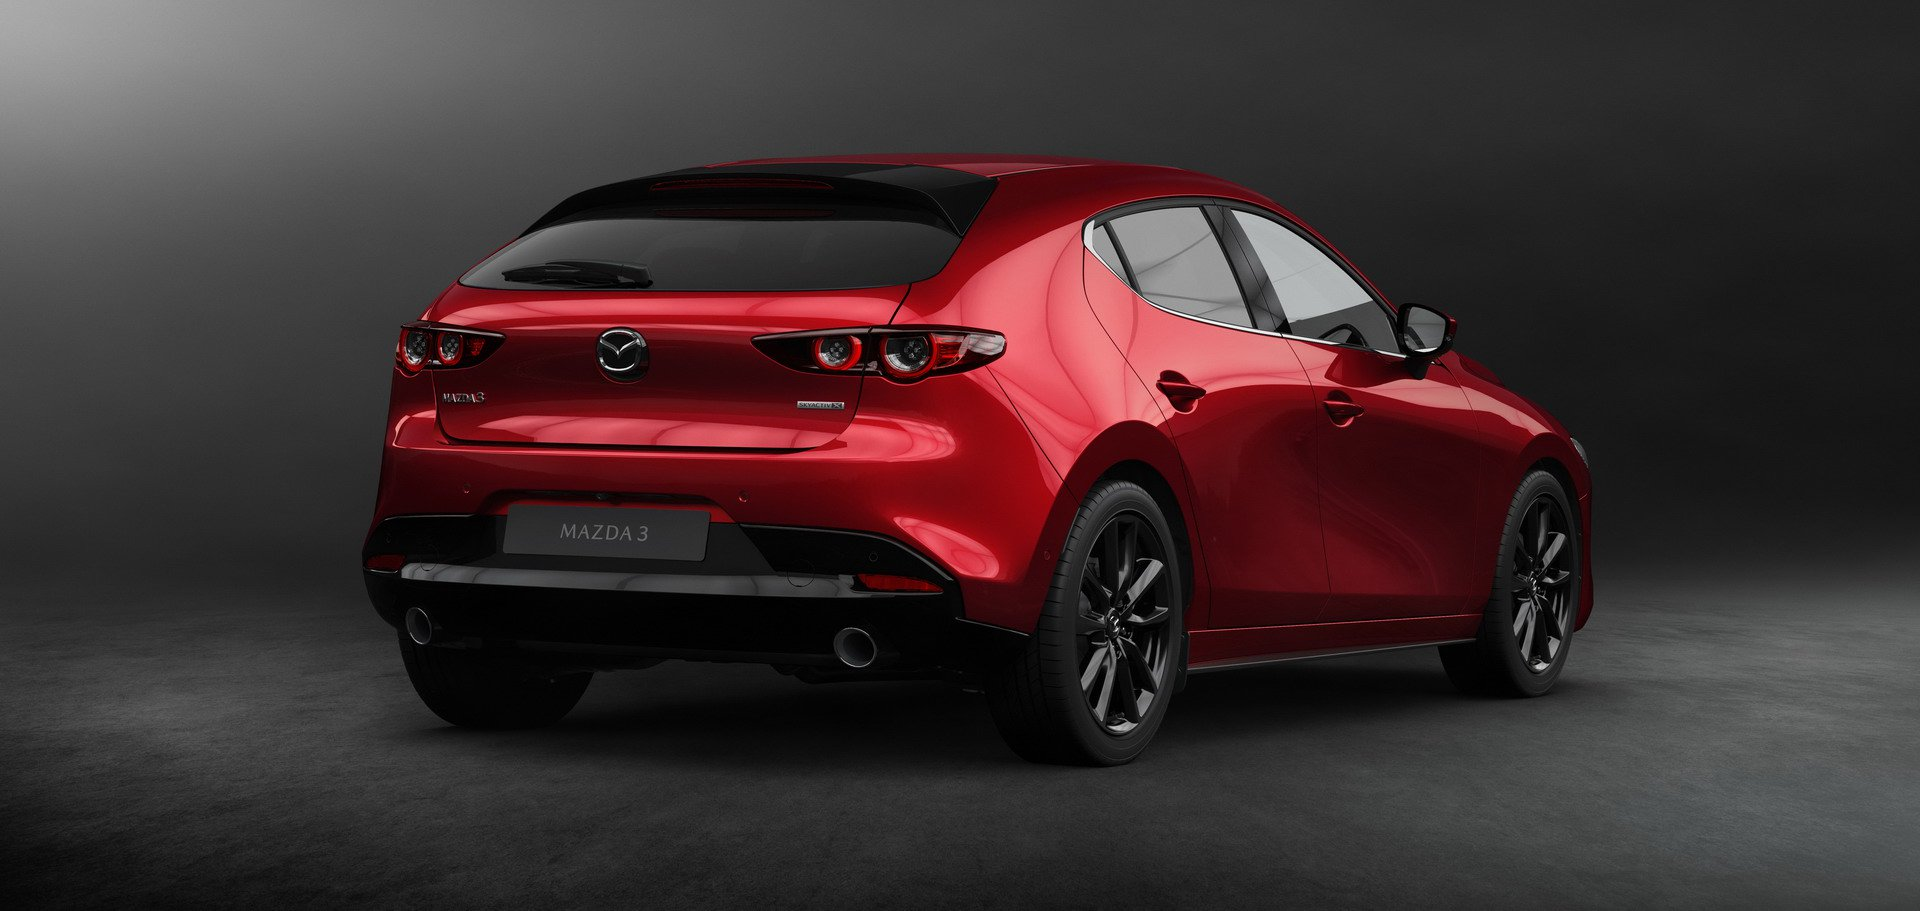 Mazda3 Hatchback and Mazda3 sedan 2019 (8)